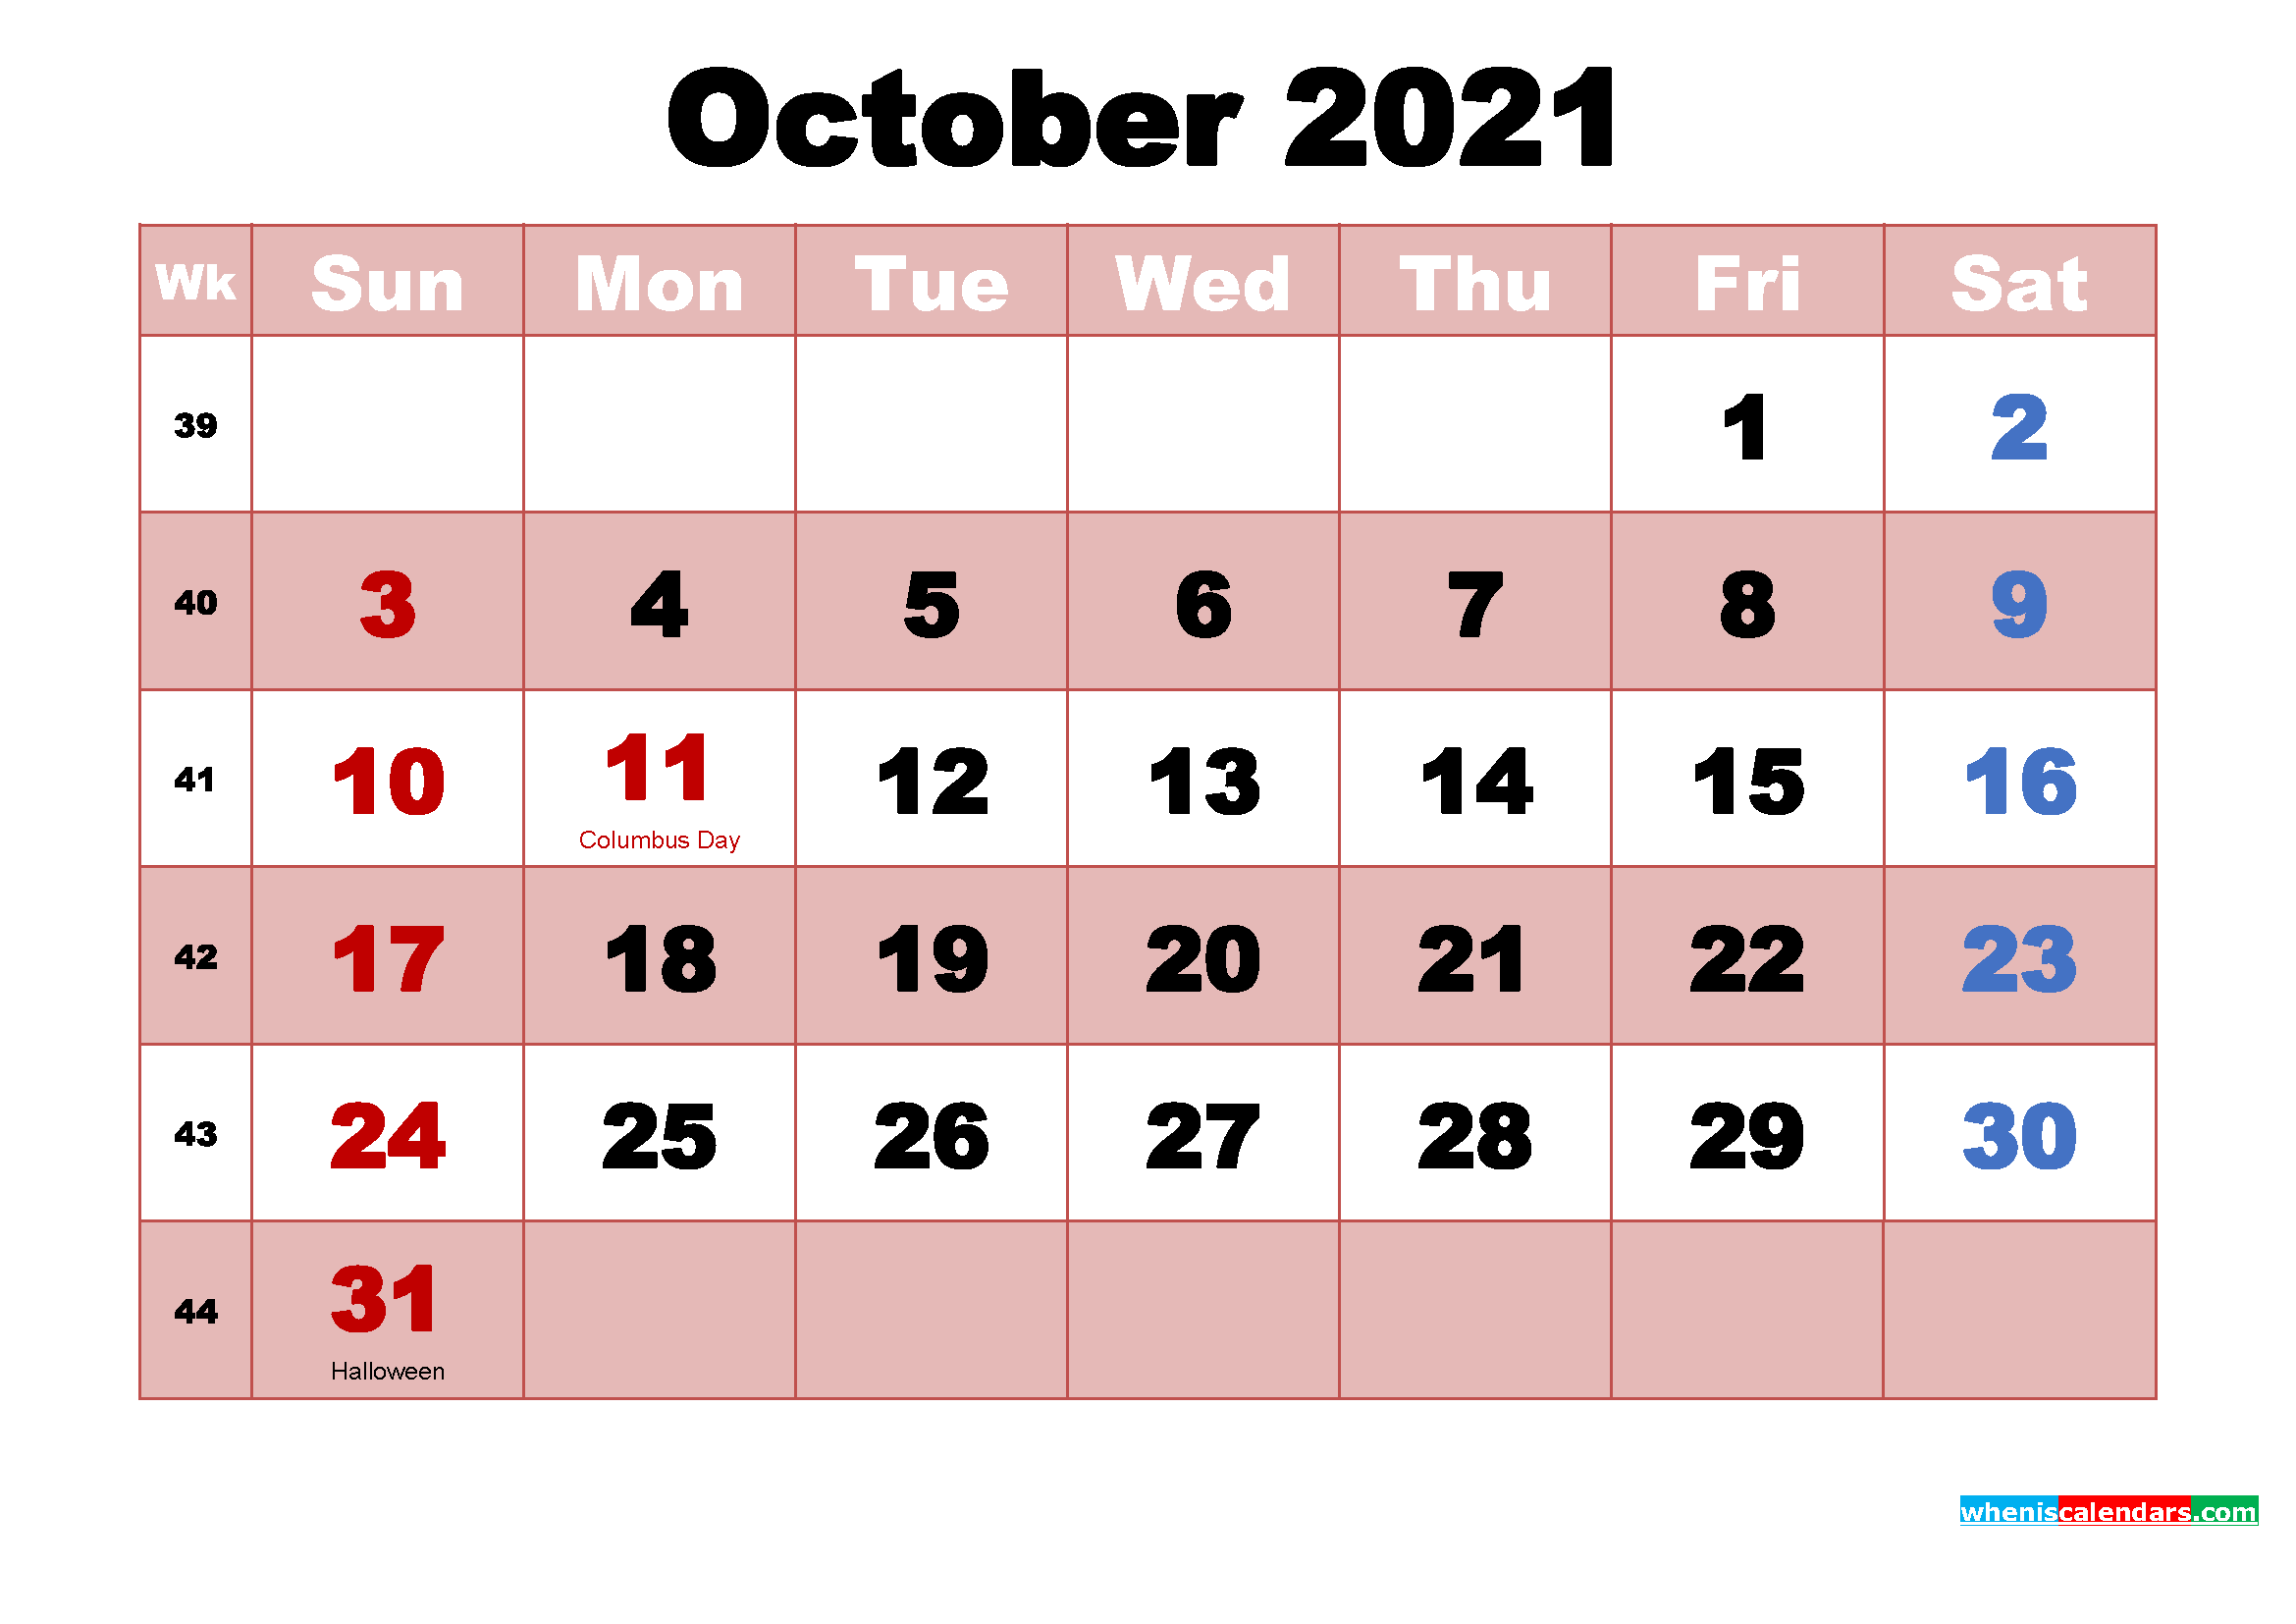 October 2021 Printable Monthly Calendar With Holidays